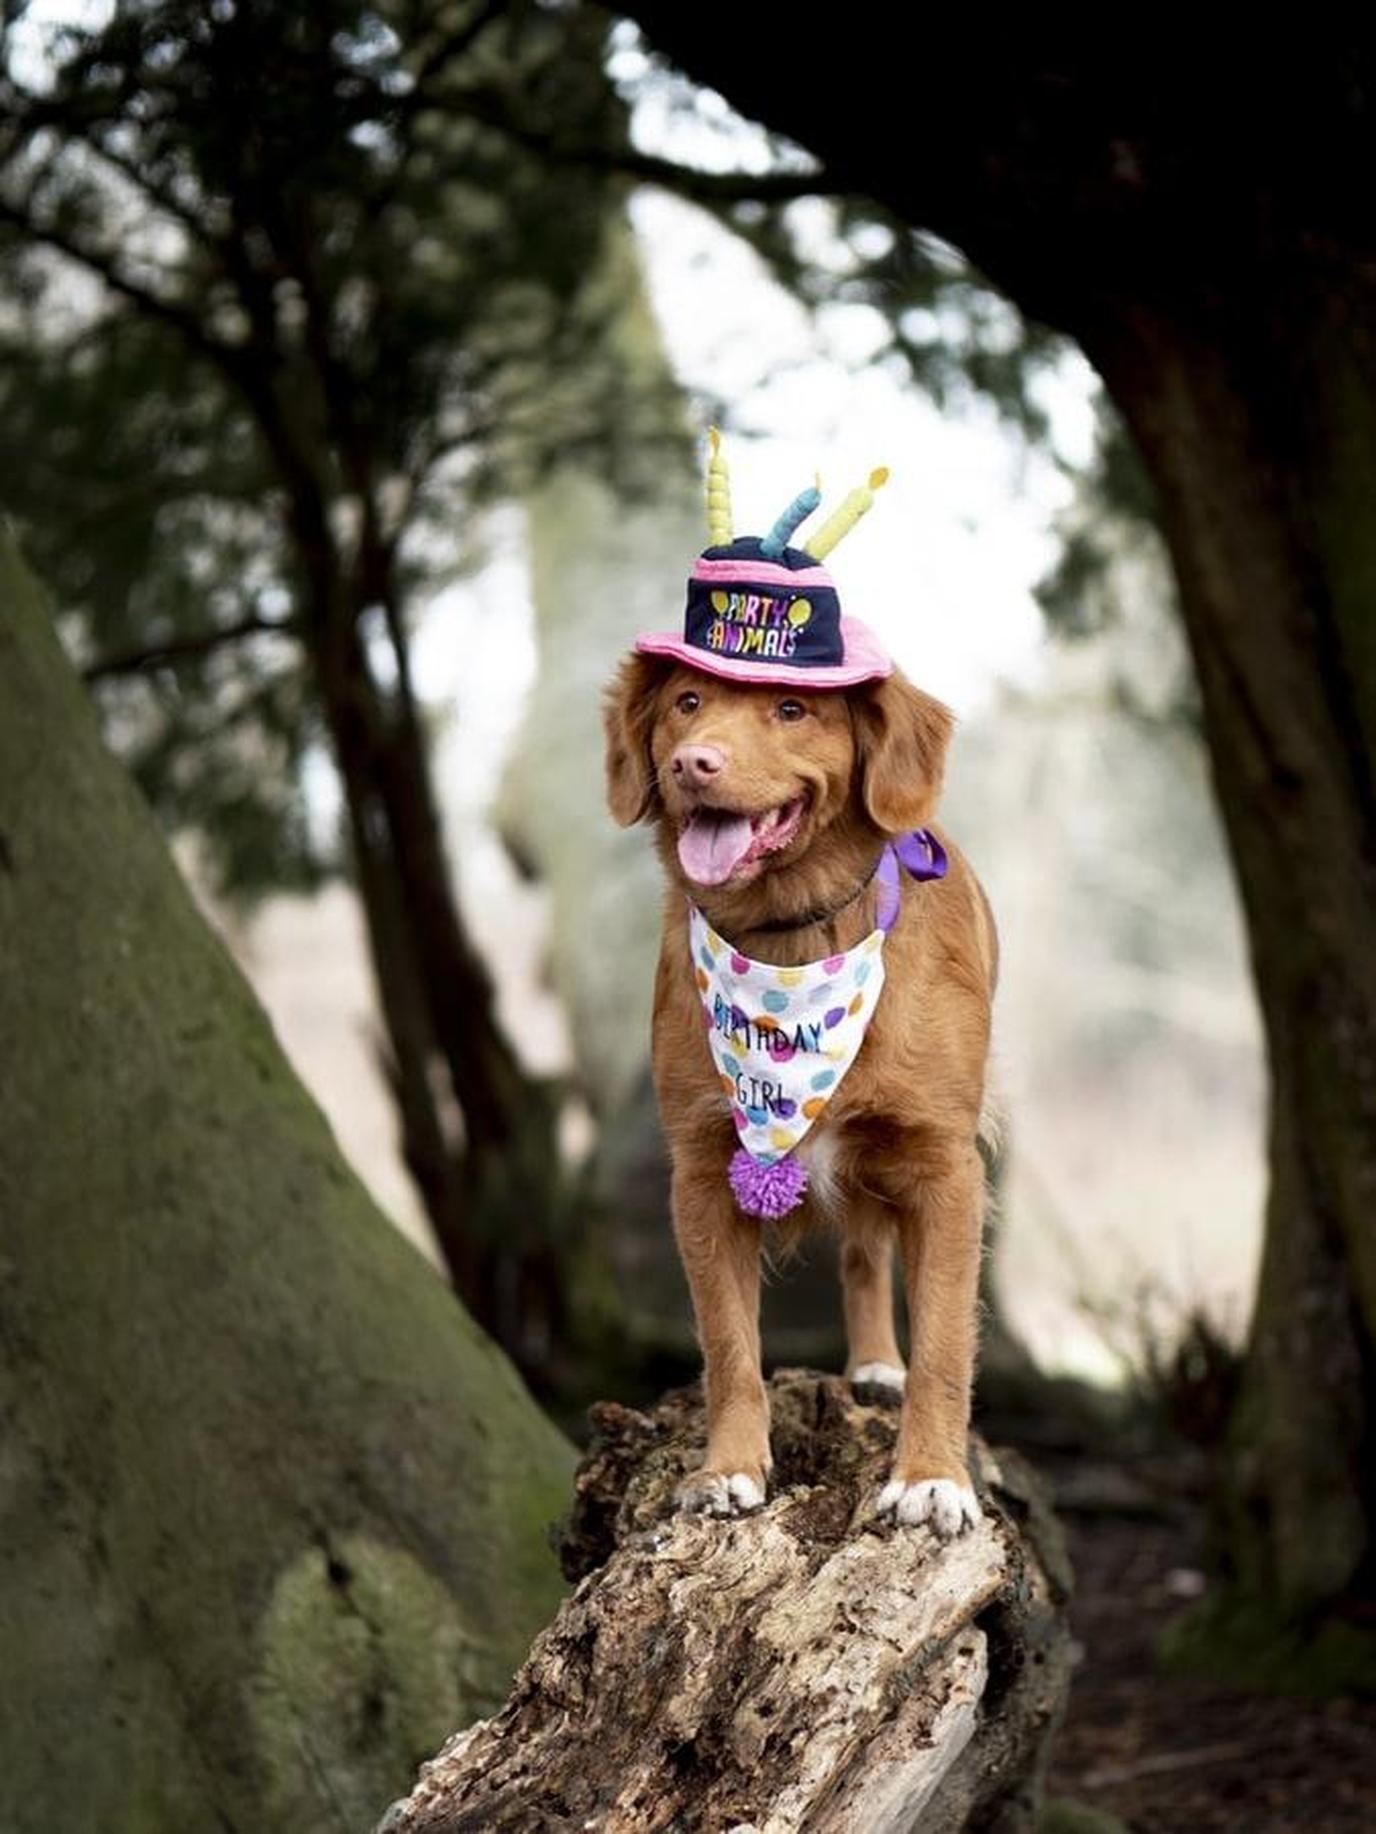 A Canine Stands on a Rock at a Dog Birthday Party at a State Park.